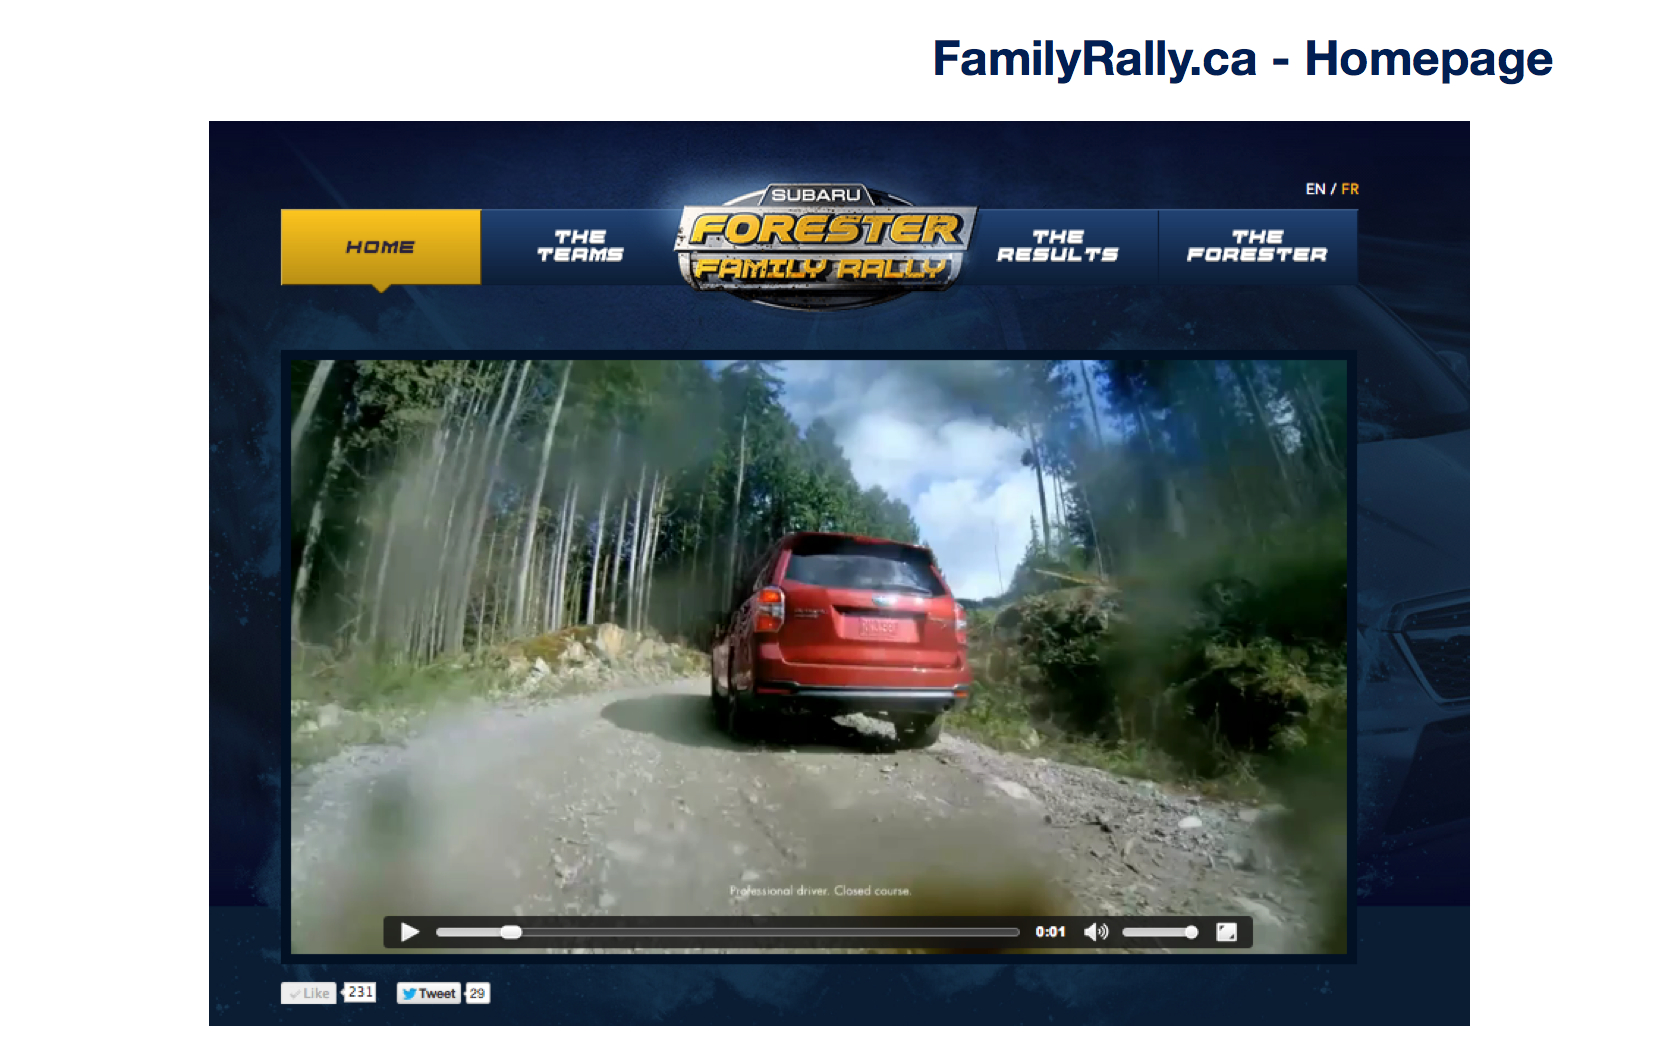 12325_Cassies_-_Subaru_Forester_Family_Rally_Creative_Elements.006